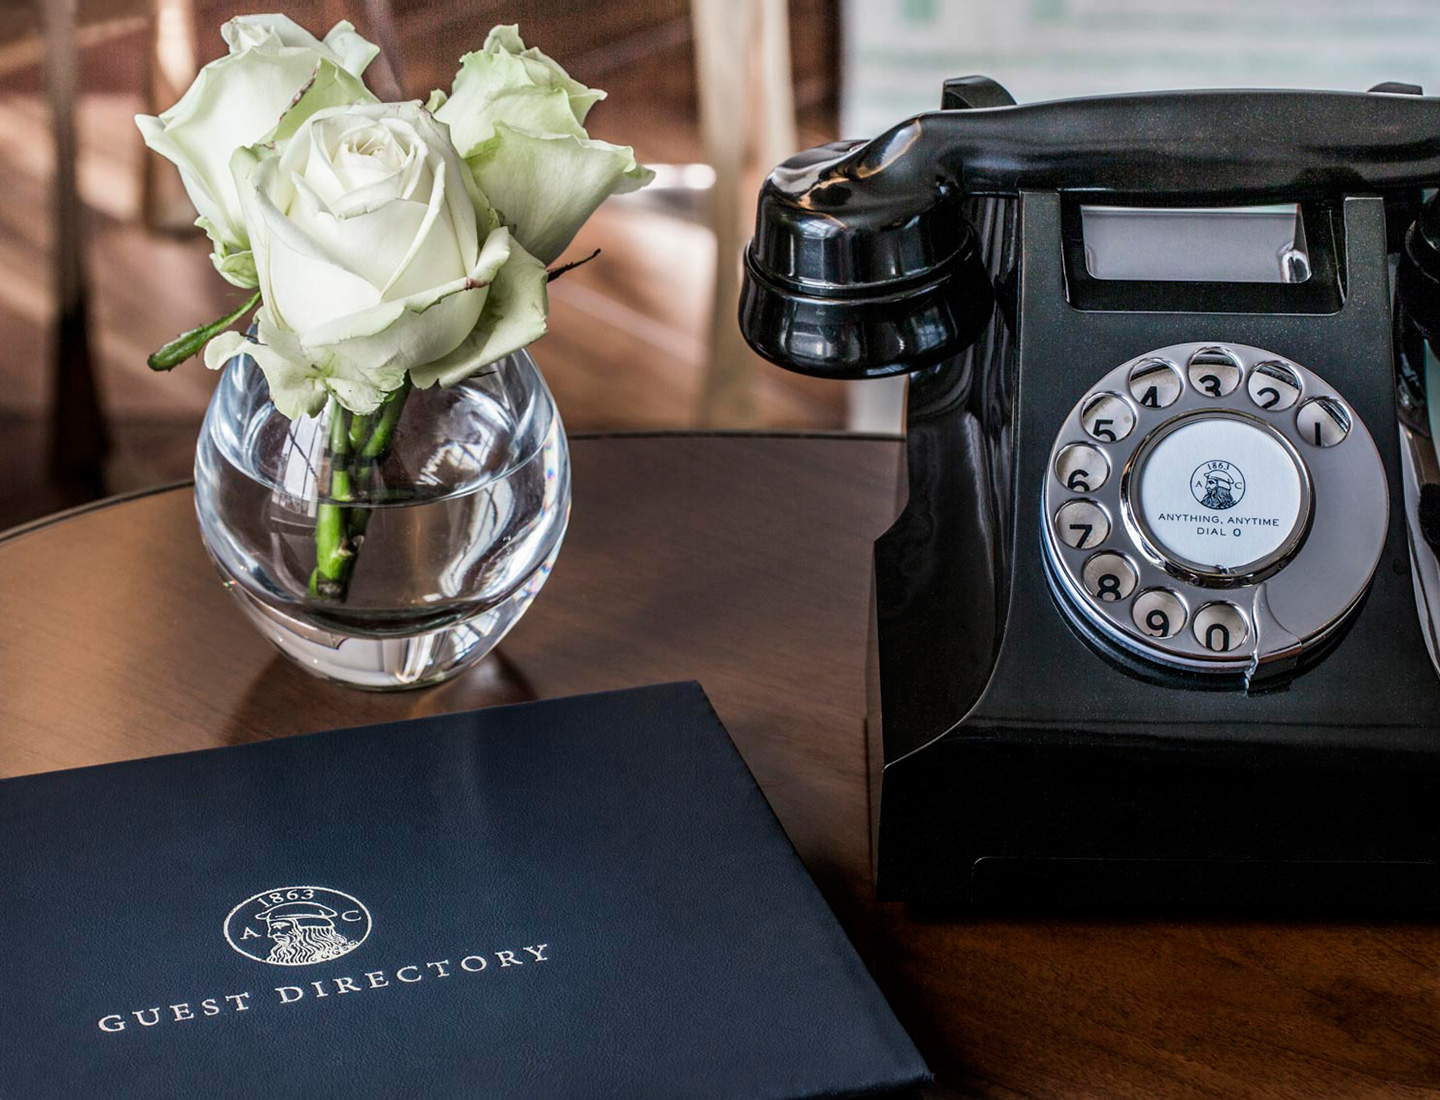 Dover Street Phone and Guest Book